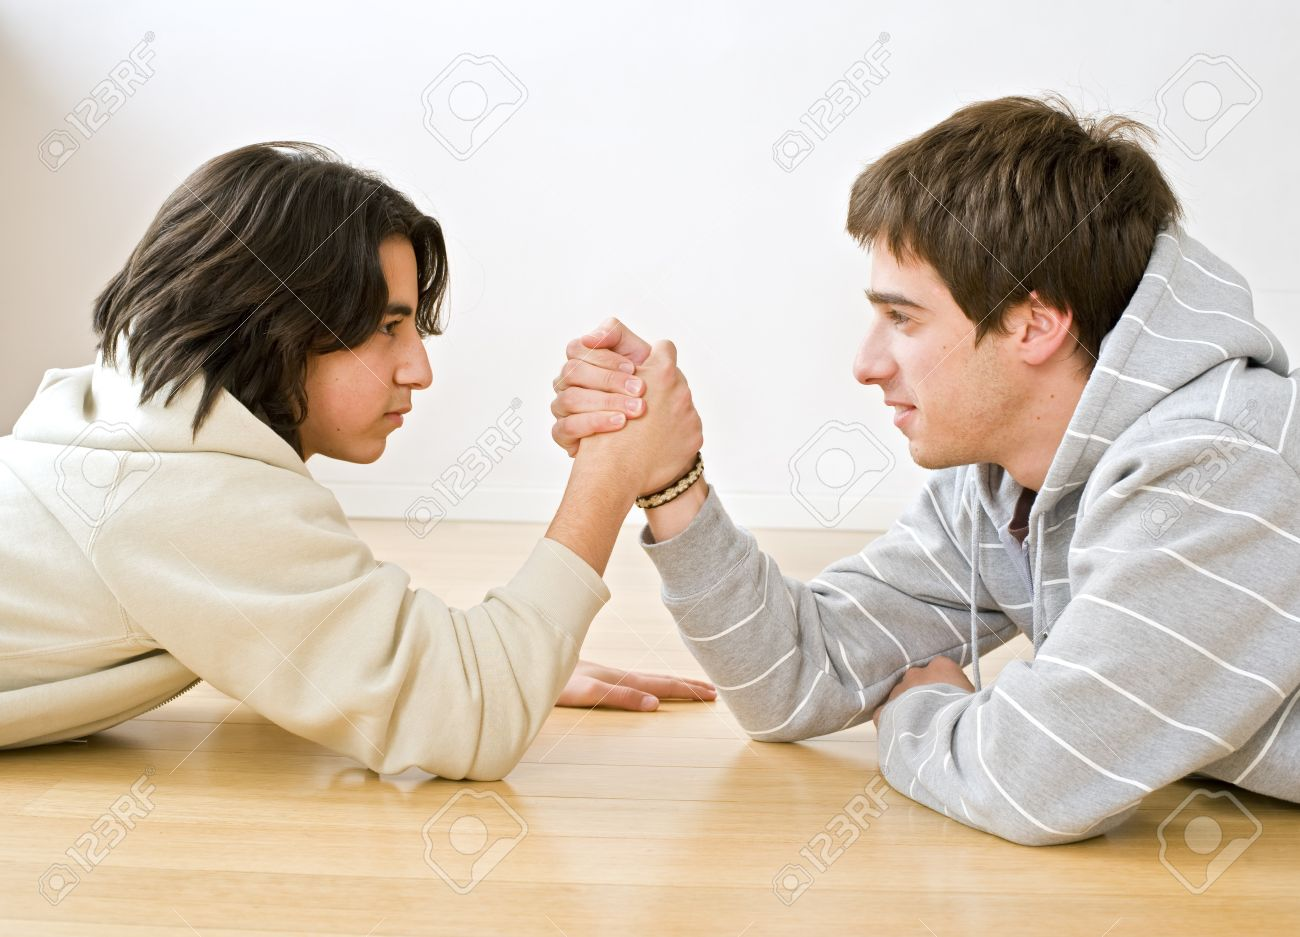 a literary analysis of arm wrestling with my father Literary terms and definitions: a this page is under perpetual construction it was last updated april 24, 2018  which includes a wrestling bout between the strongest icelander and an evil spirit,  the analysis of a piece of literature through the examination of archetypes and archetypal patterns in jungian psychology.